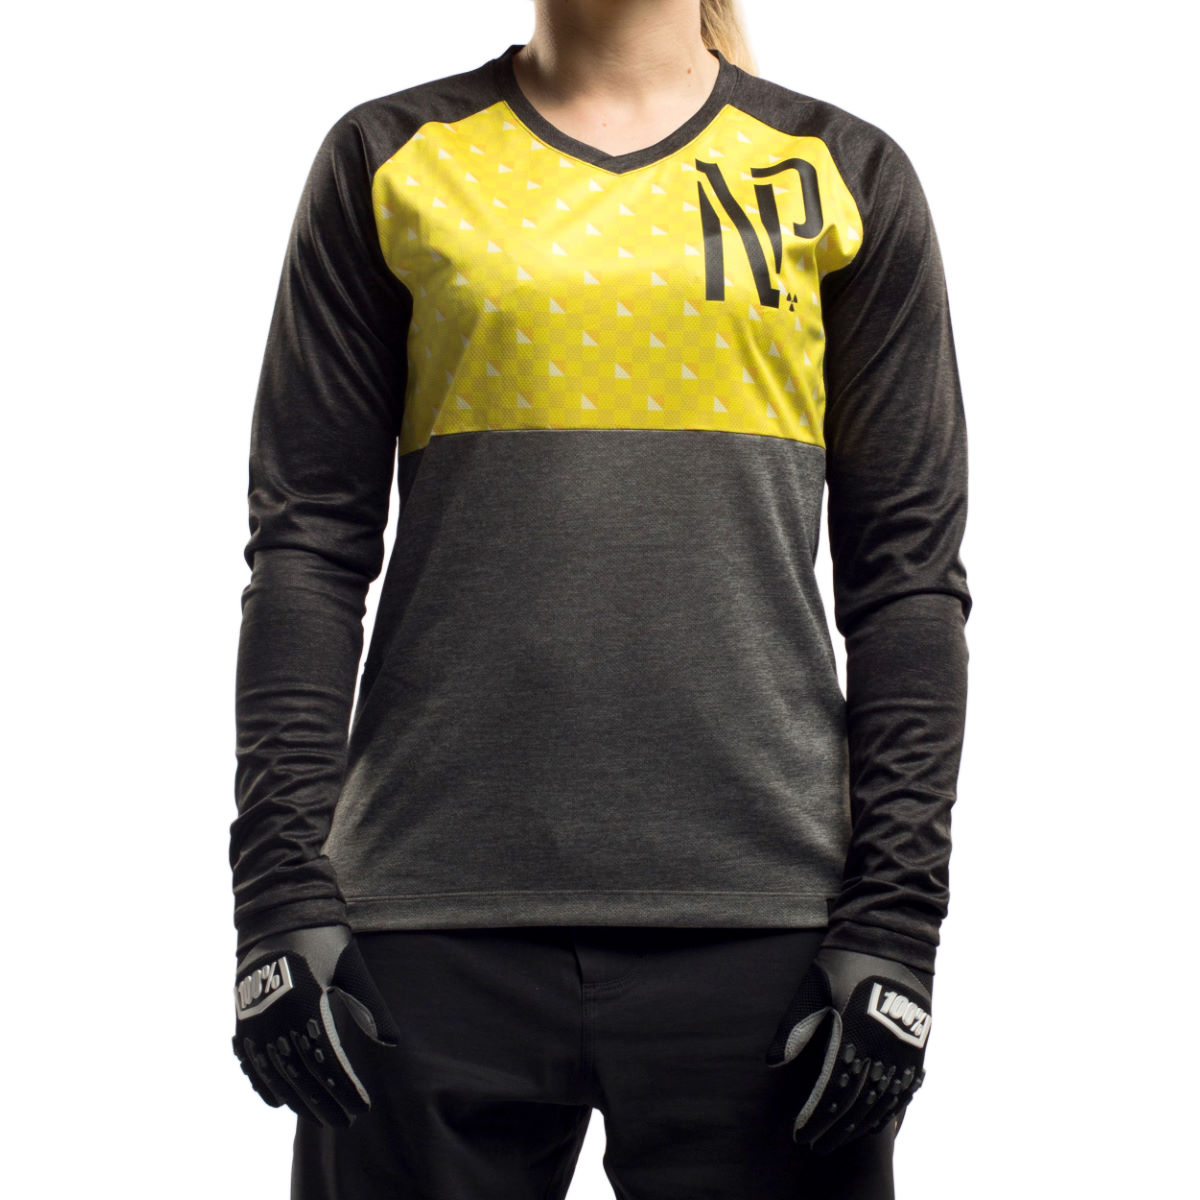 Maillot Femme Nukeproof Blackline NP (manches longues) - X Small